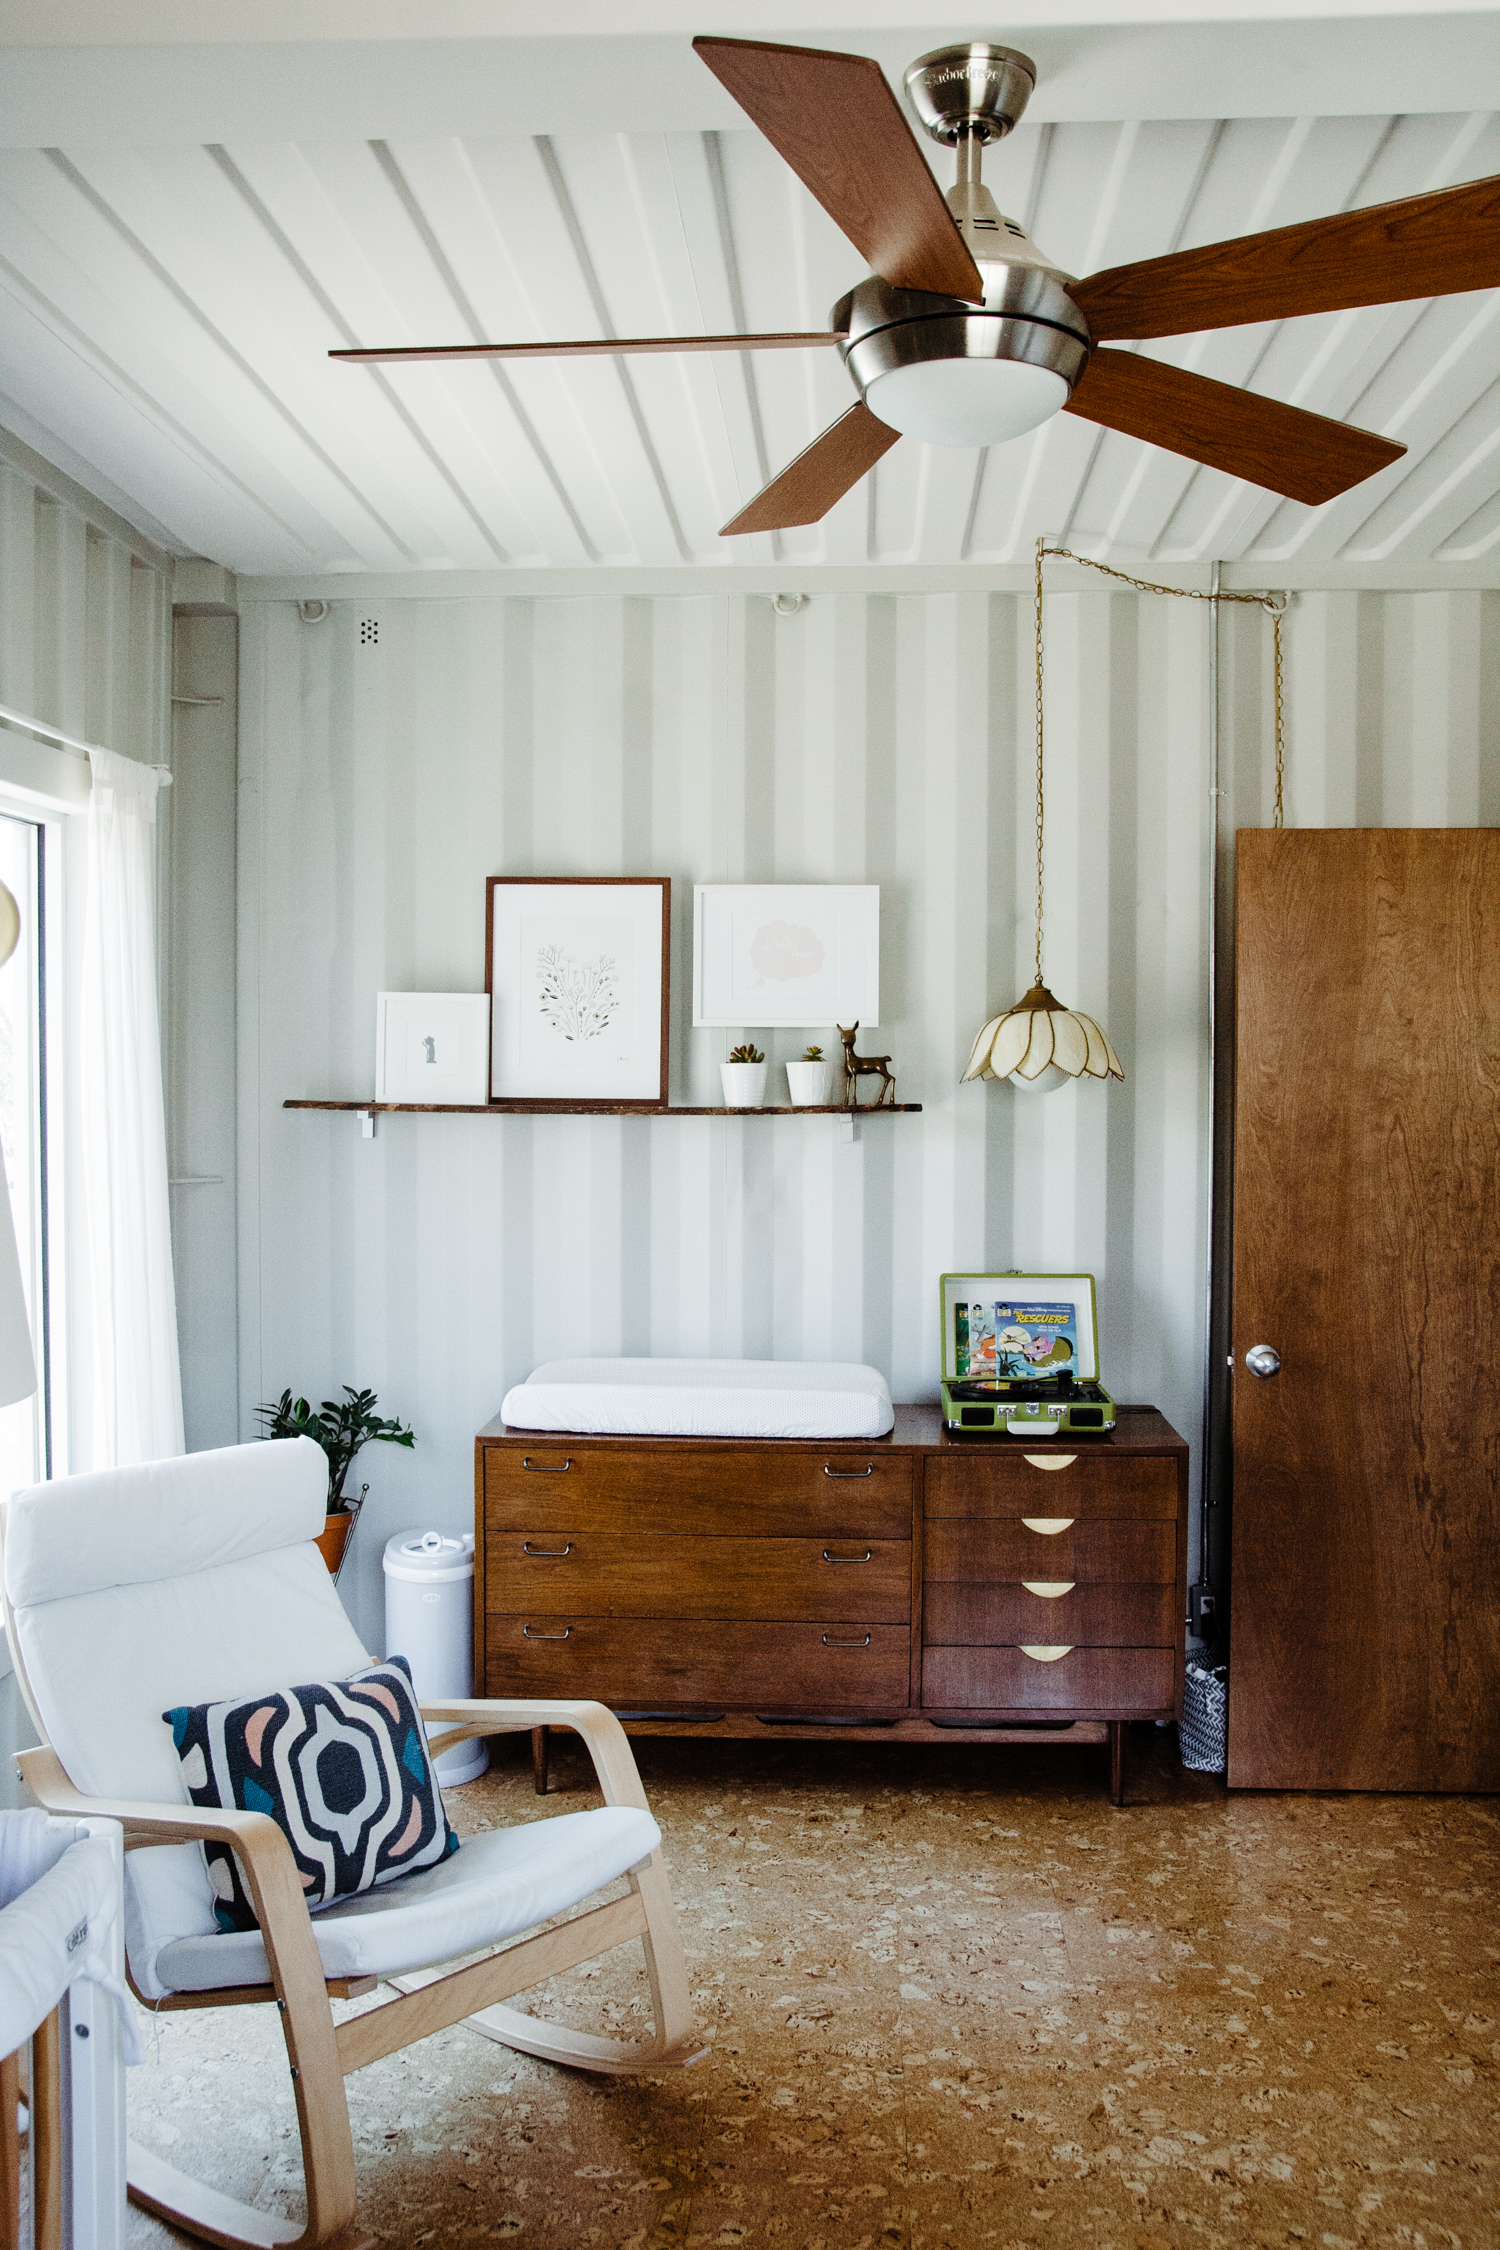 Hannah Bright used both white and dark wood frames in her daughter's room   . All of the frames are streamlined, simple, and call out to other wood and white objects in the room (white crib, wooden dresser, white rug, etc.).